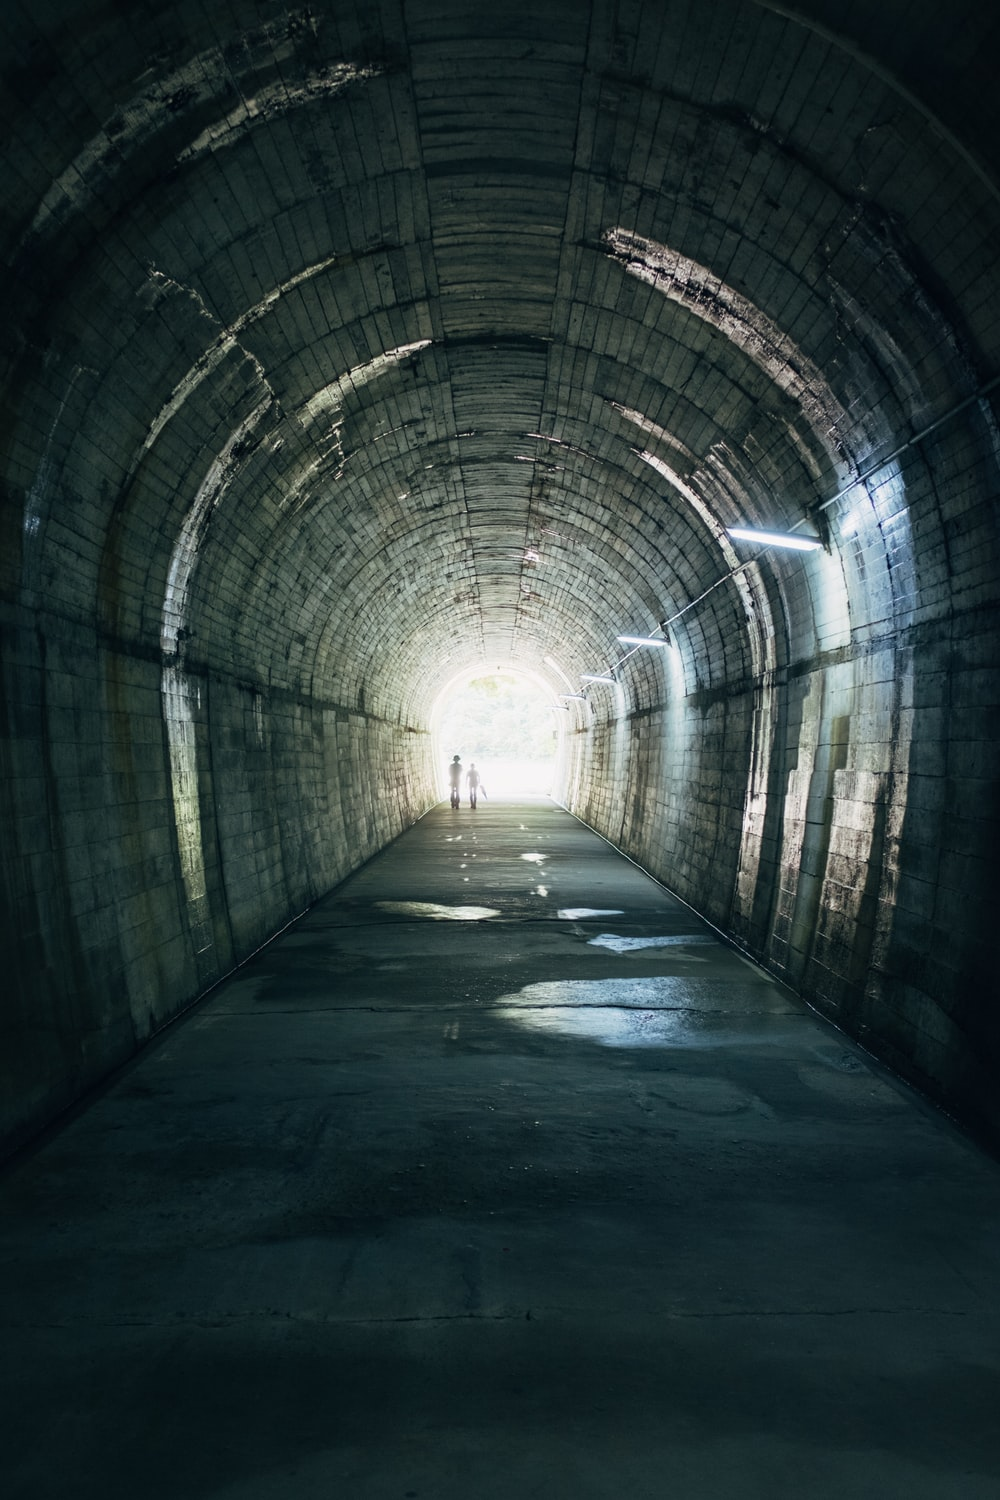 tunnel leading to white light